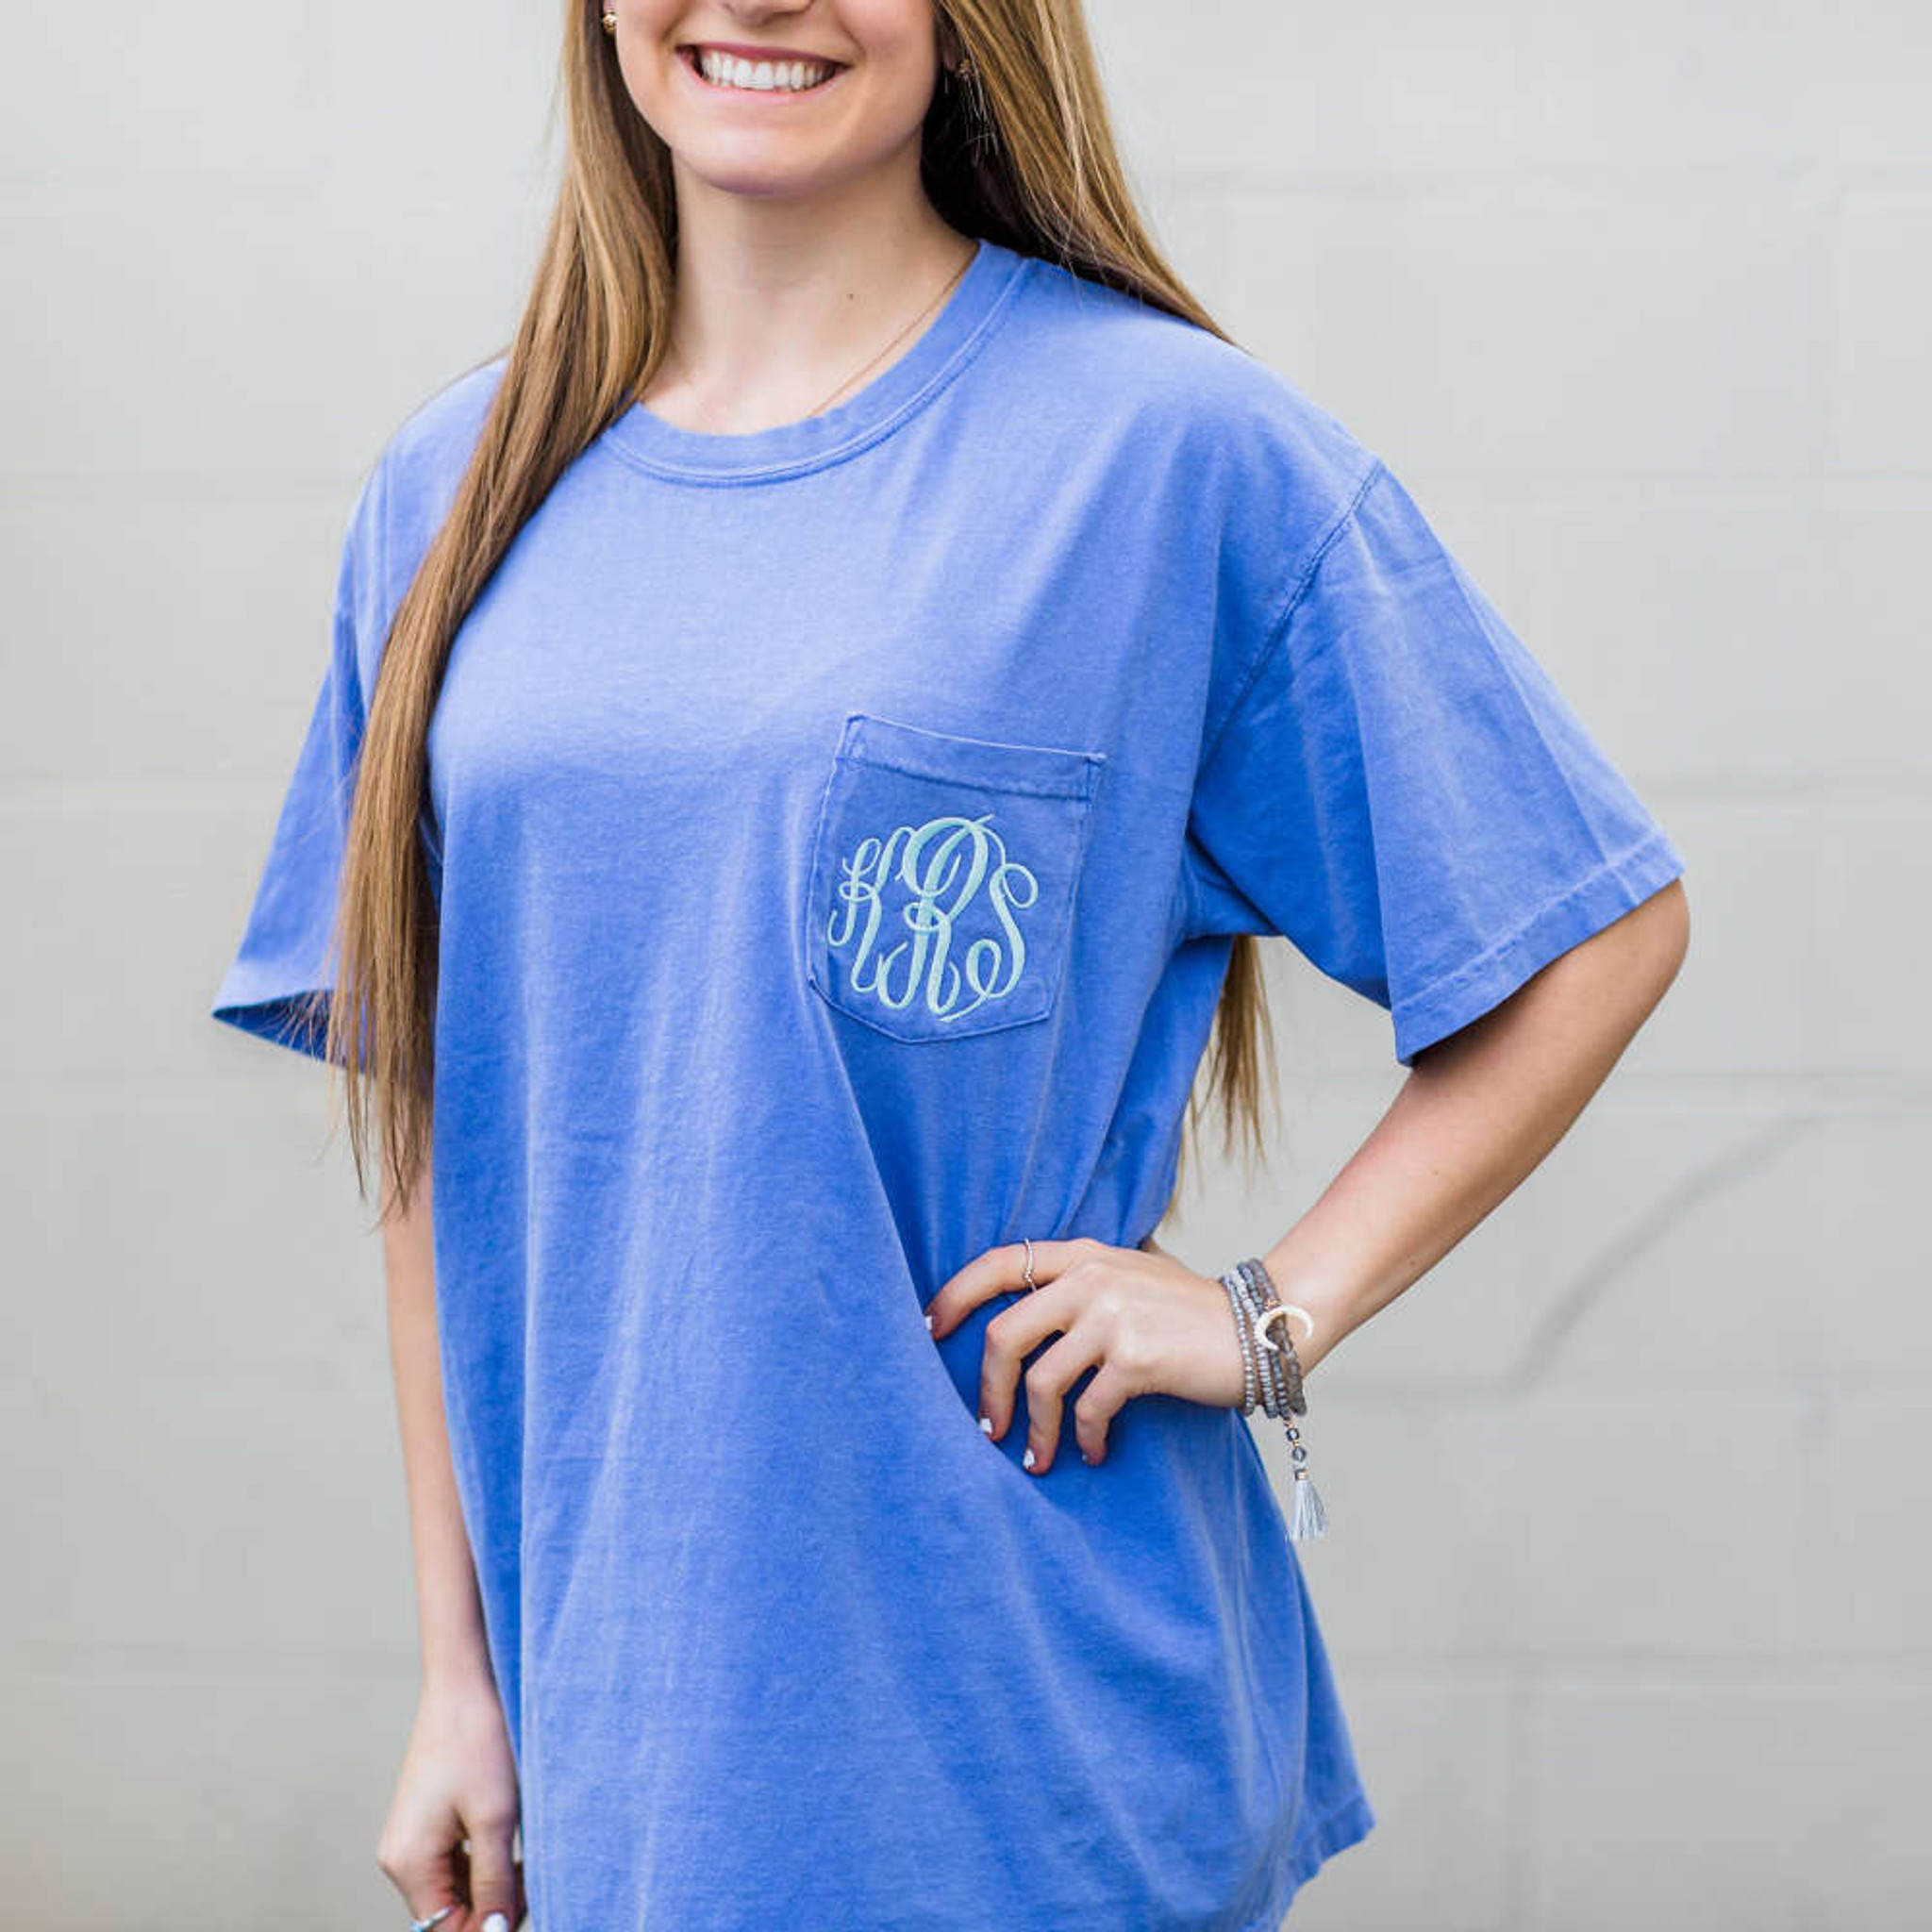 "A girl is wearing a light blue tee shirt with the monogram ""KRS"" in fancy white lettering on the chest pocket."